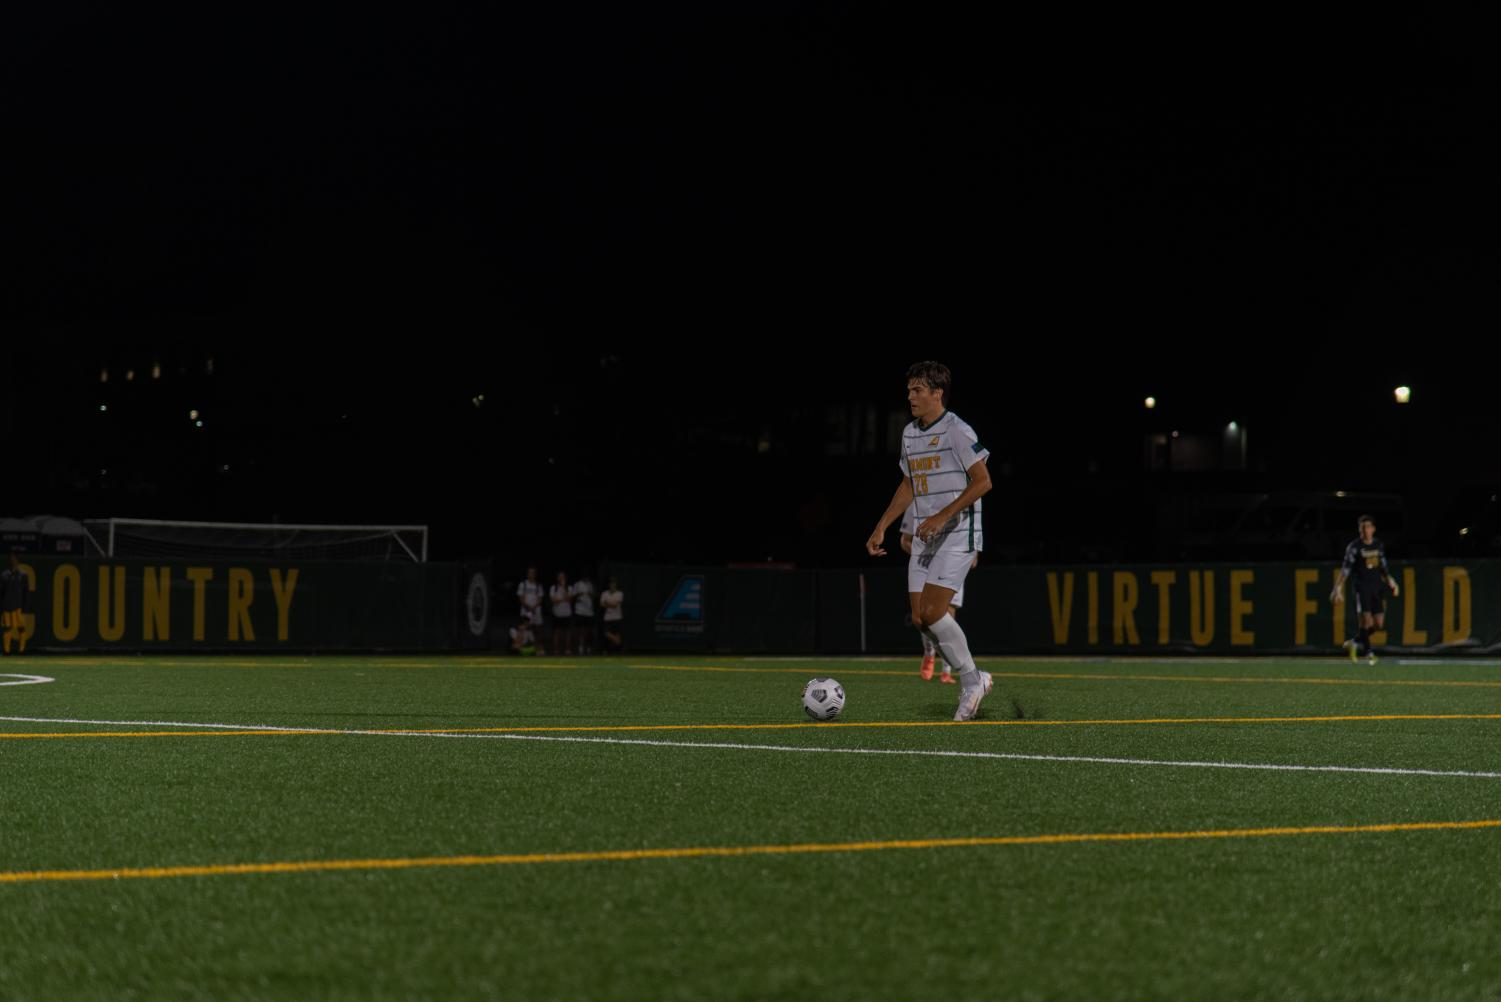 Secondary image for soccer game